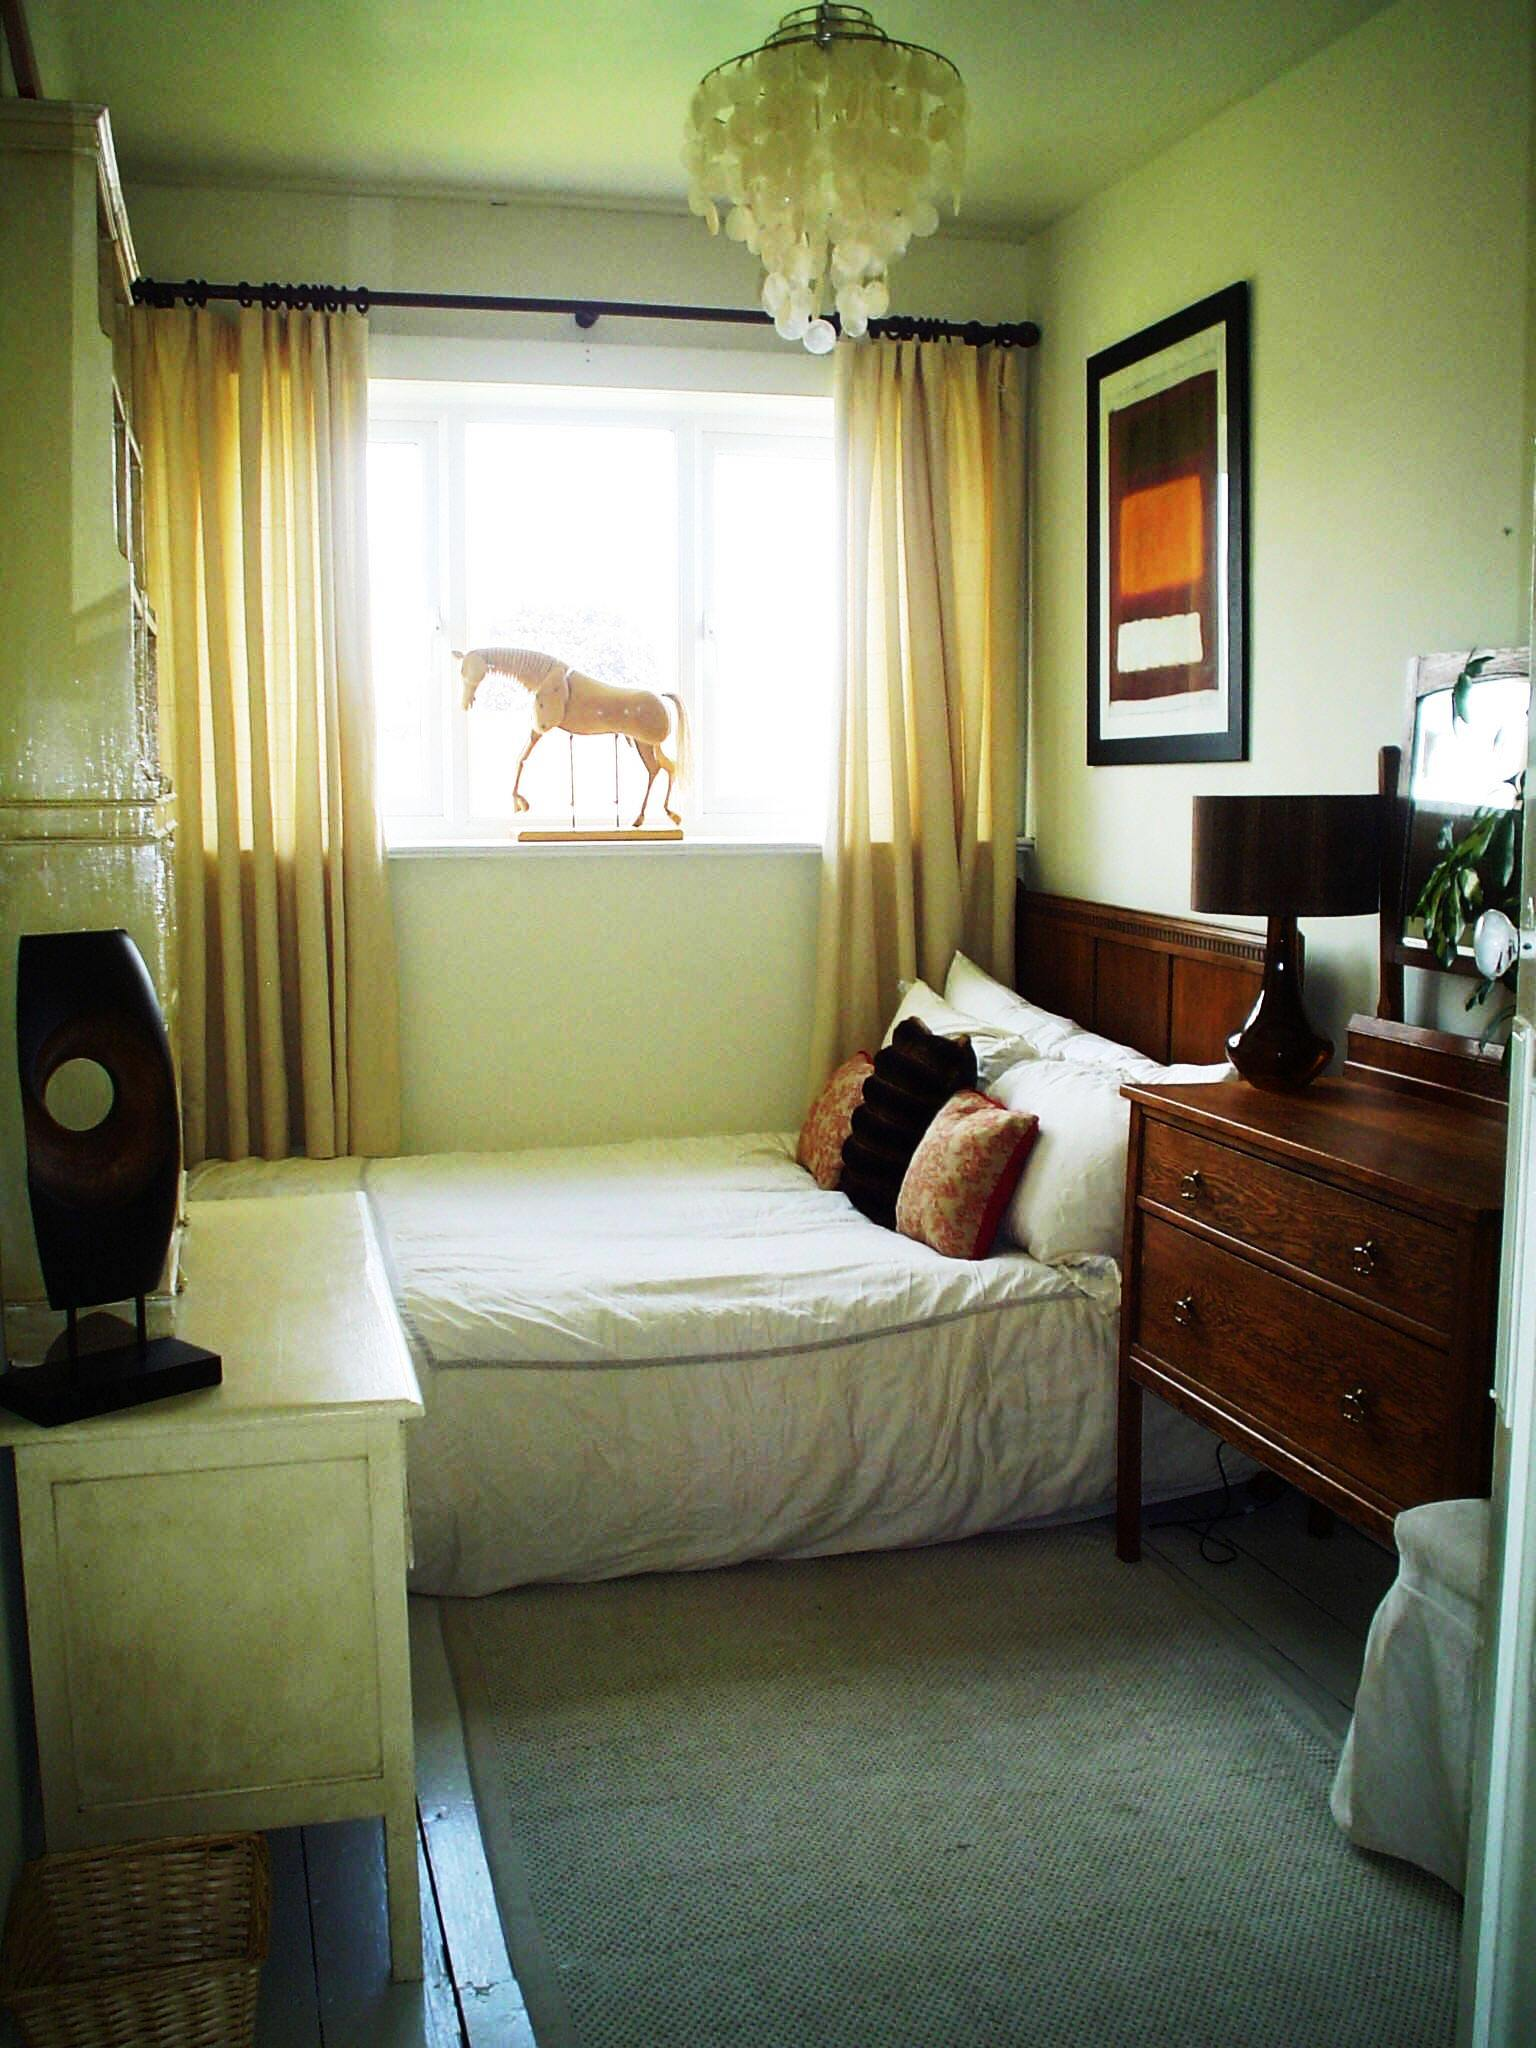 30 Small Bedroom Interior Designs Created to Enlargen Your ... on Bedroom Ideas For Small Spaces  id=81032